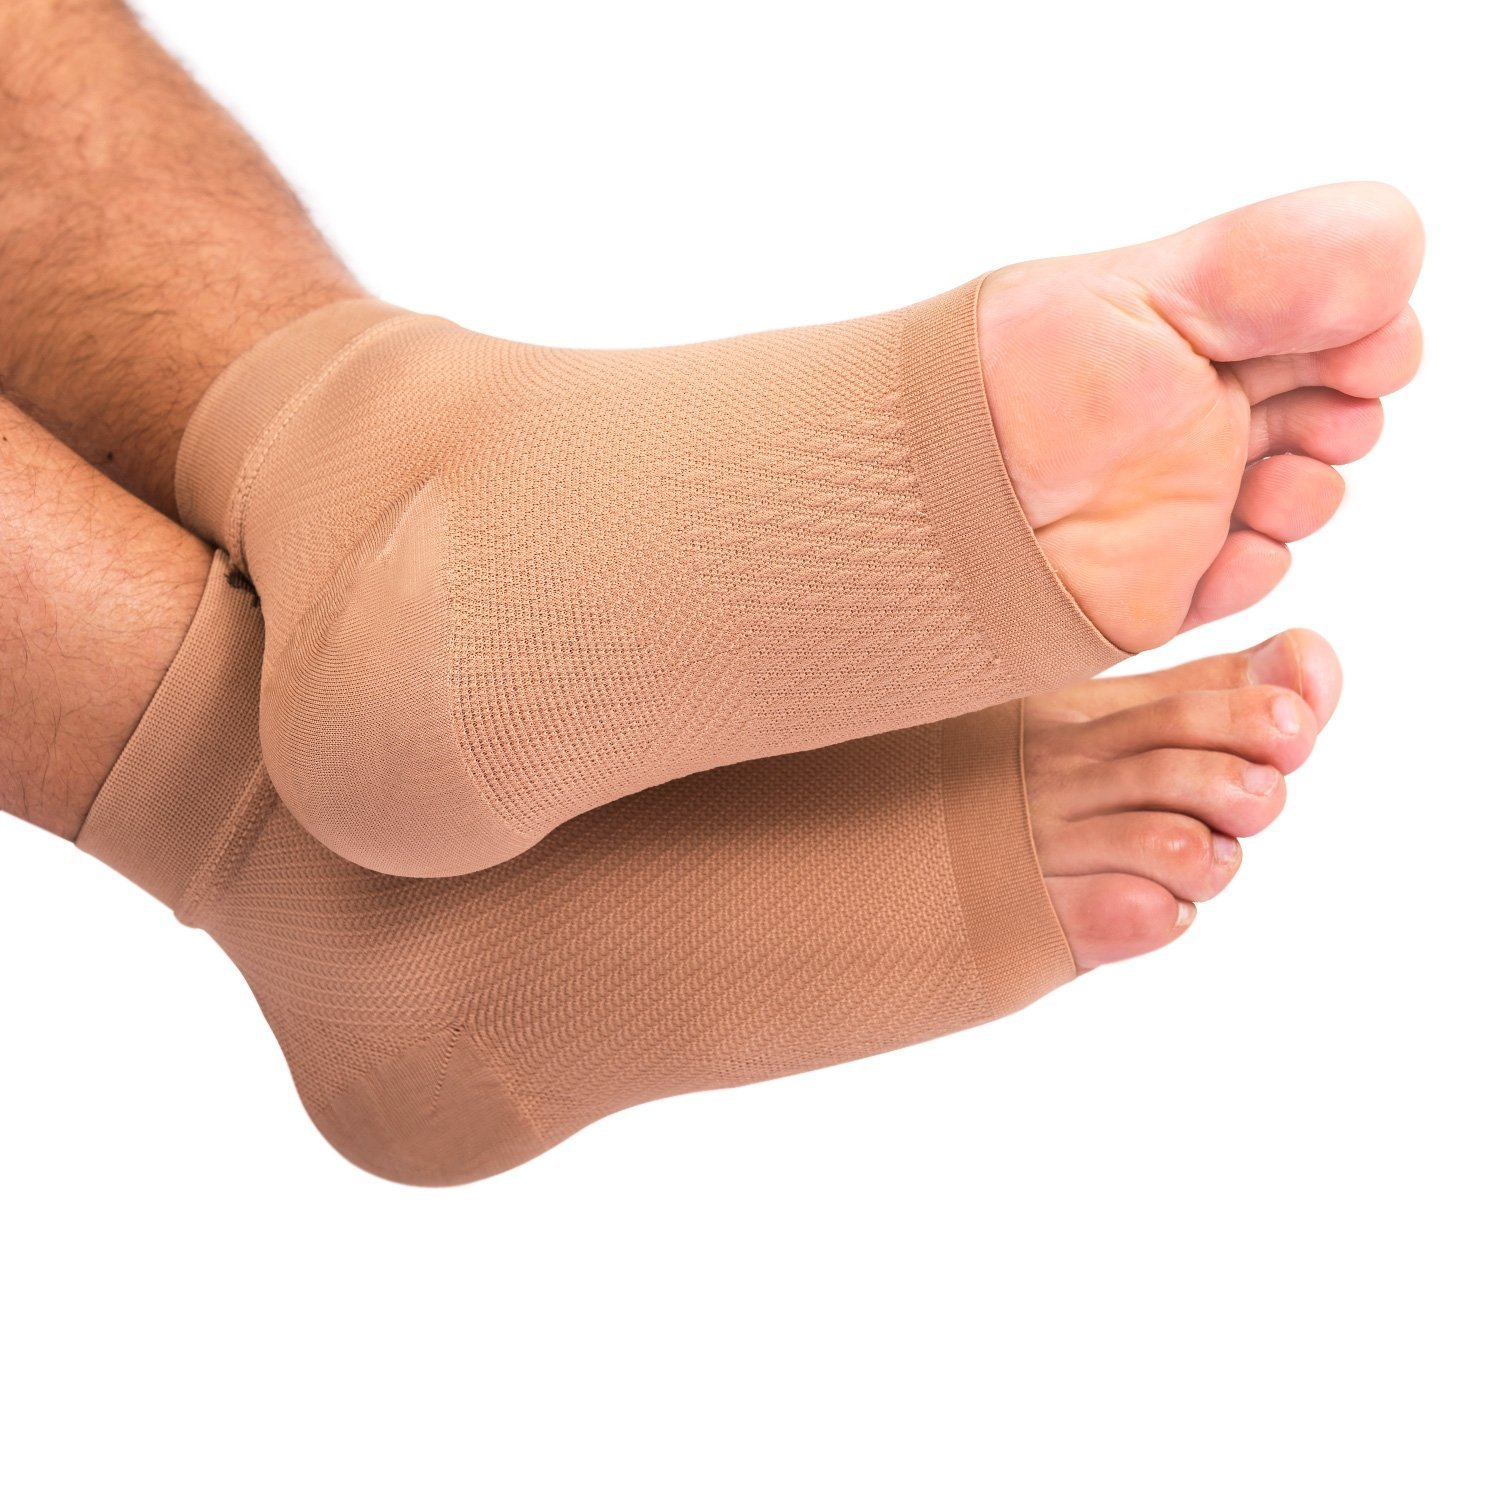 27fd0b72e3 Amazon.com: Bitly Plantar Fasciitis Socks (1 Pair) Premium Ankle Support foot  Compression Sleeve (Nude, Large): Health & Personal Care